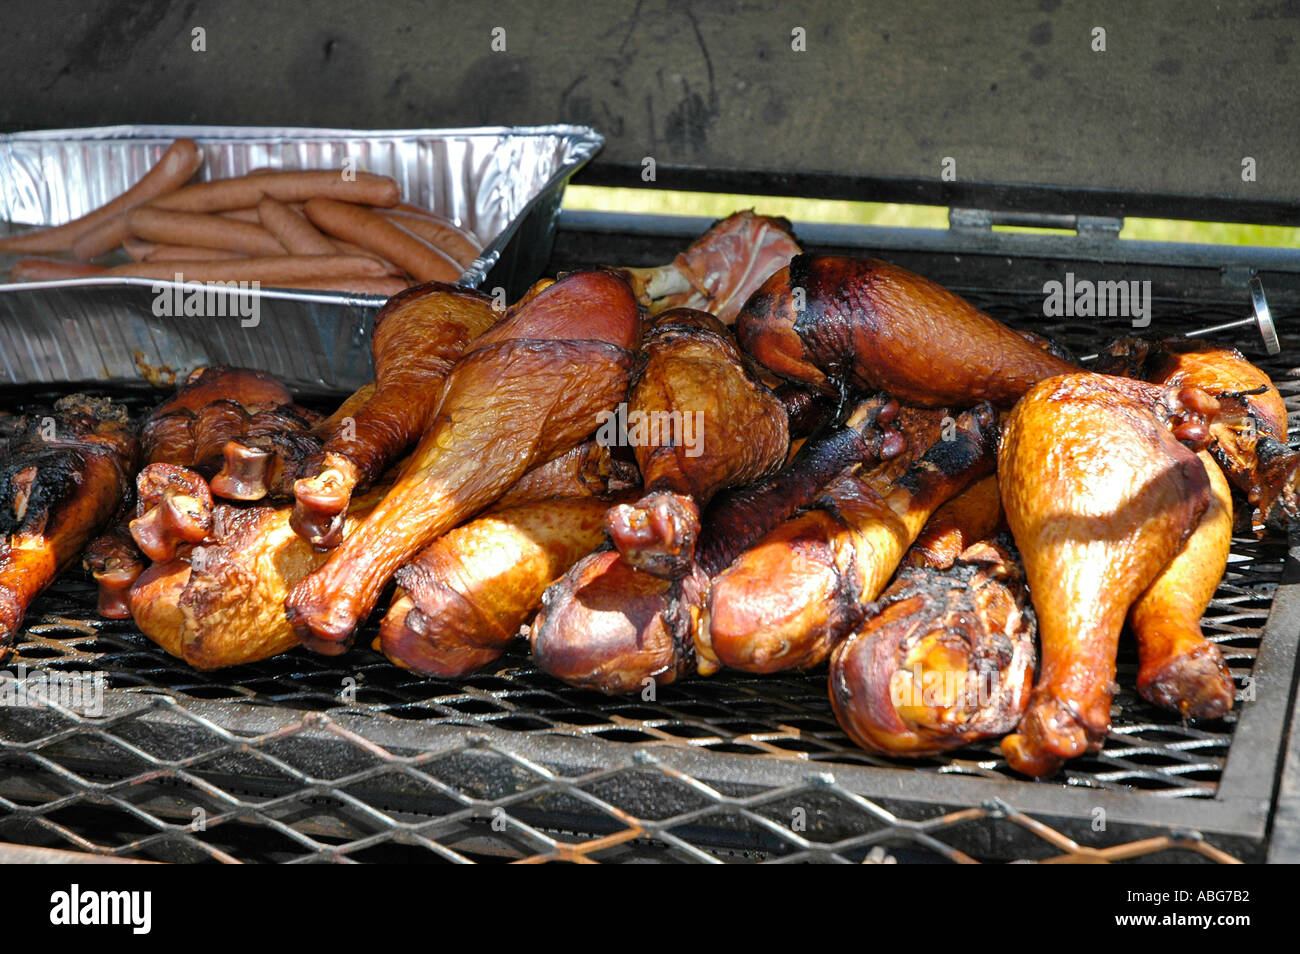 Turkey legs and hot dogs cooking on a hot grill Stock Photo ...